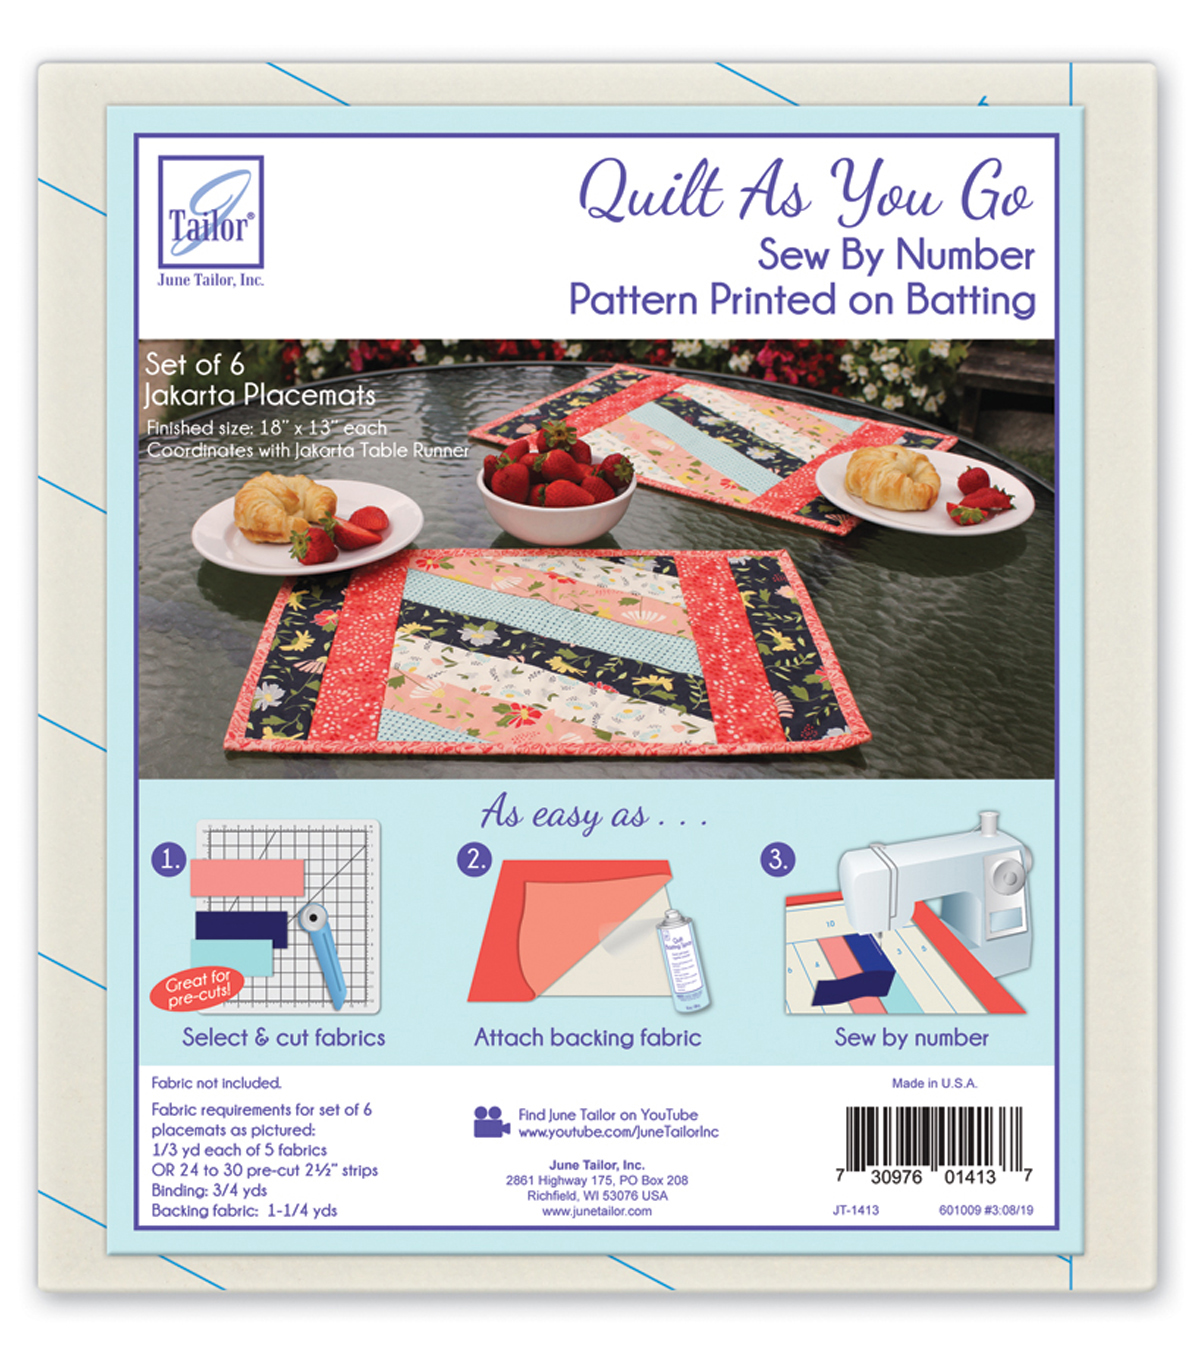 June Tailor® Quilt As You Go Batting Placemats-Jakarta